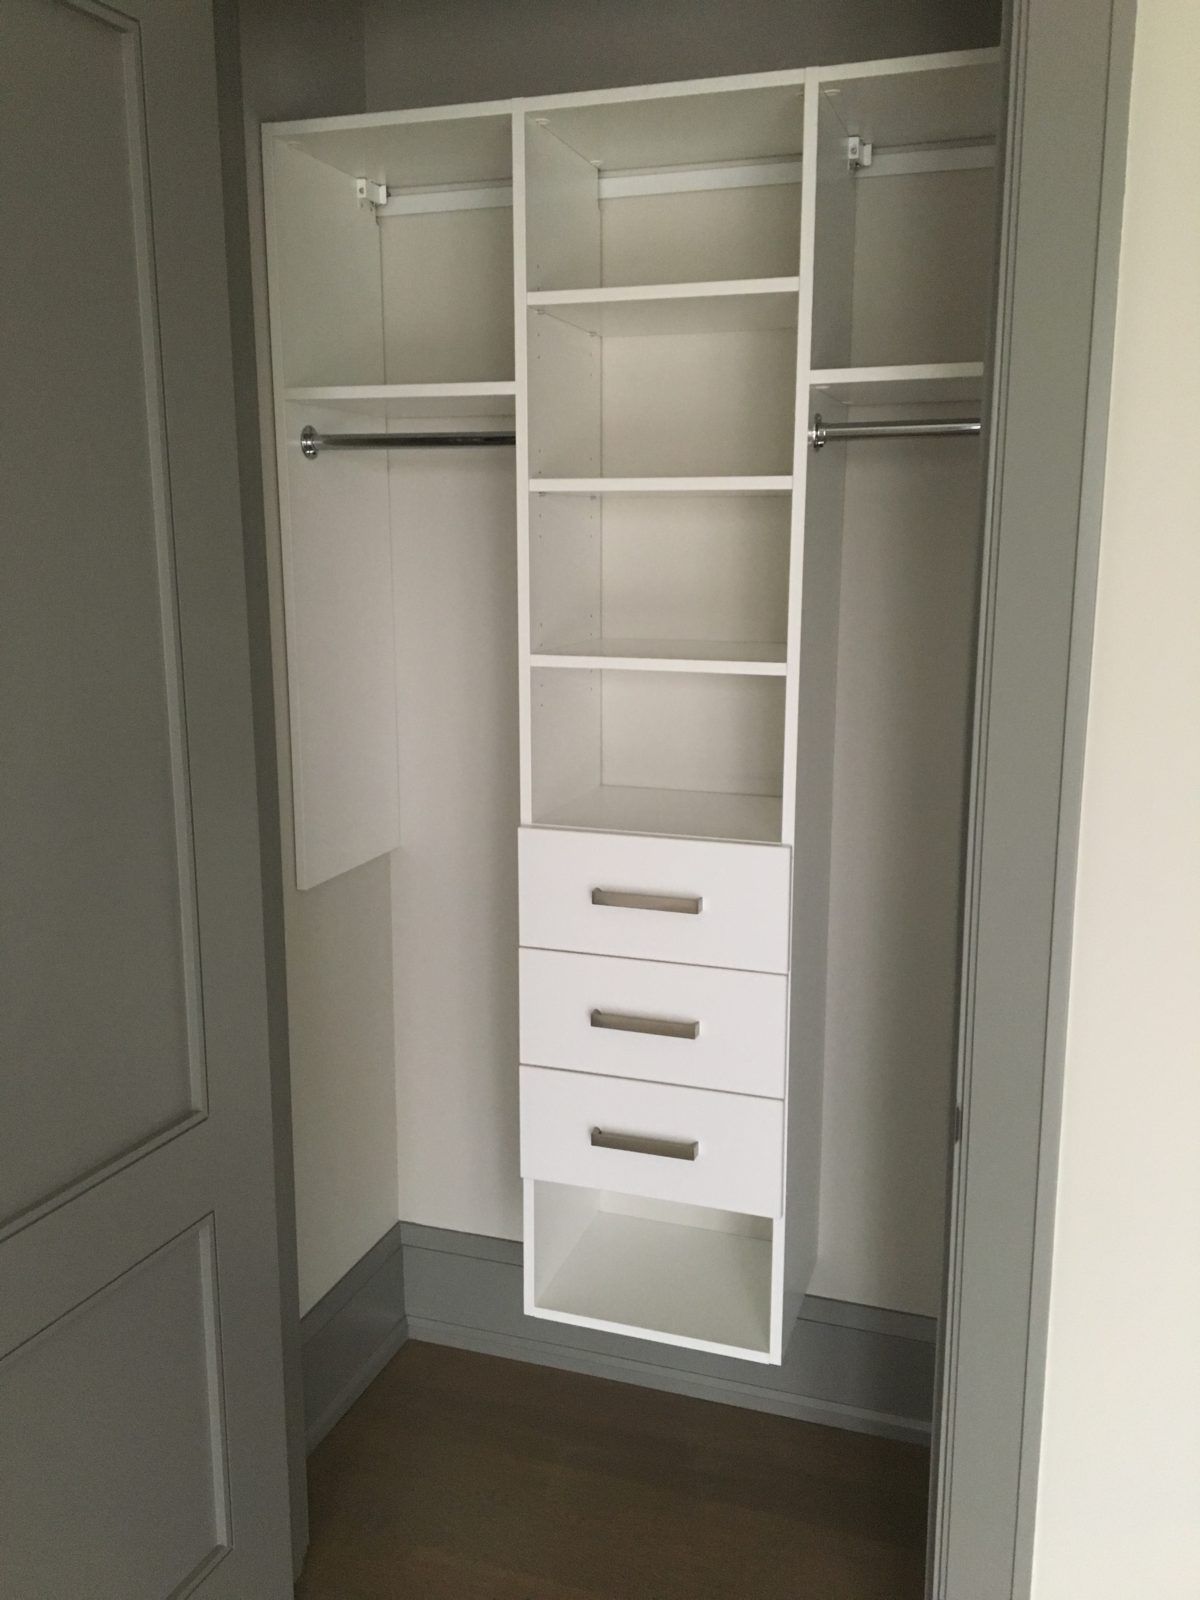 inserts for organizers nocrop closet shoe best real cleaner simple boot strategist organizer ideas article and a storage